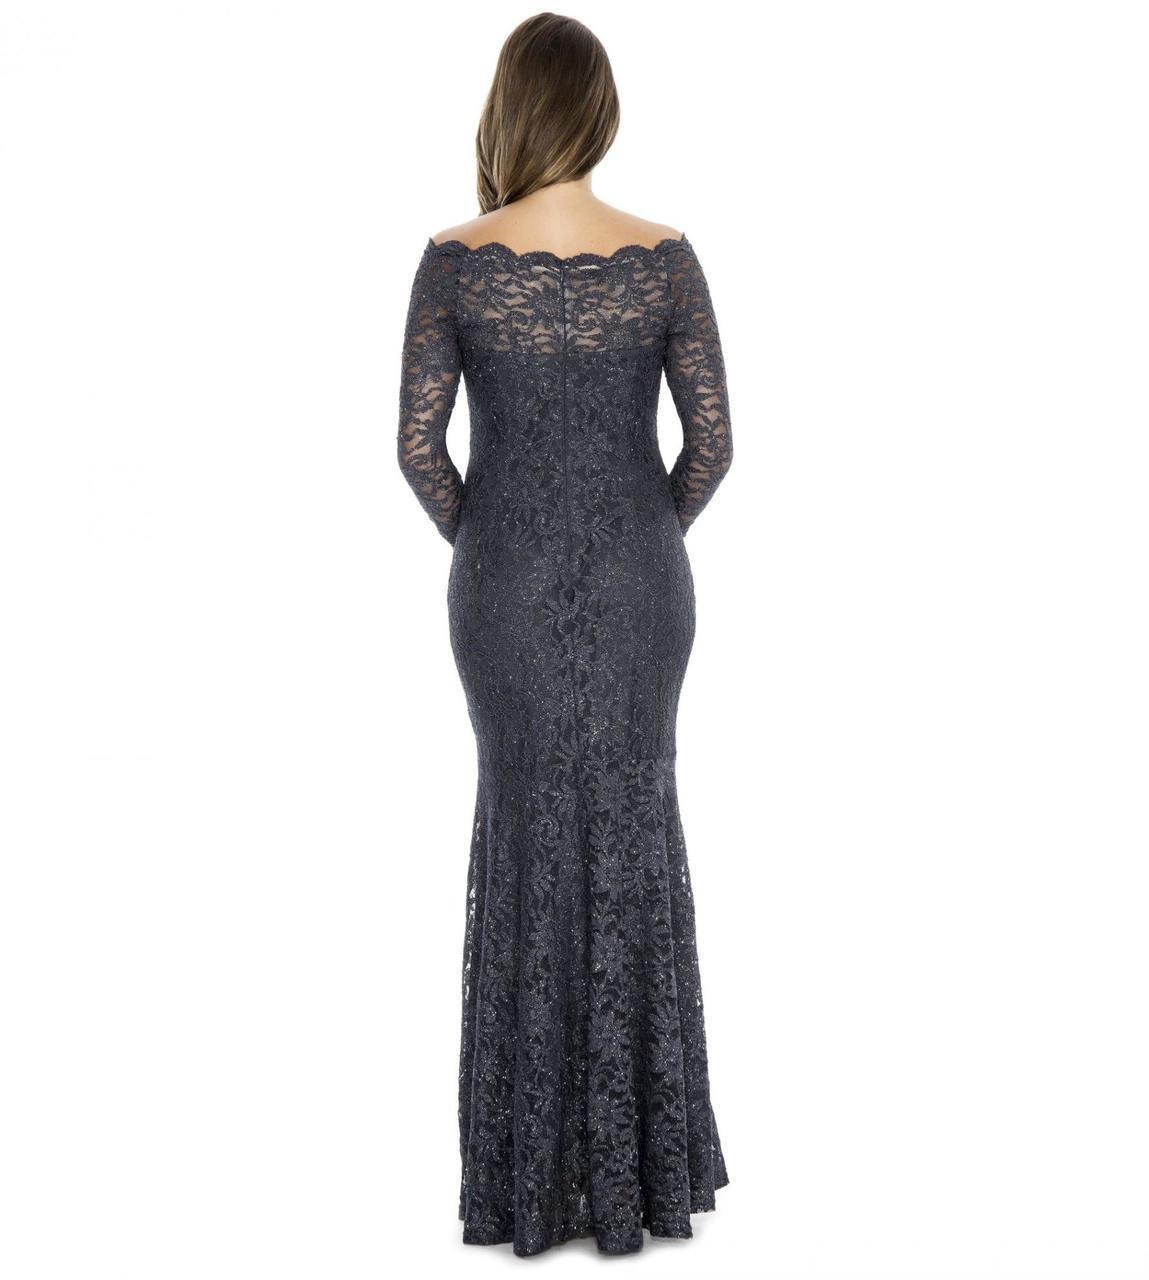 Decode 1.8 - Off-Shoulder Lace Long Dress in Gray